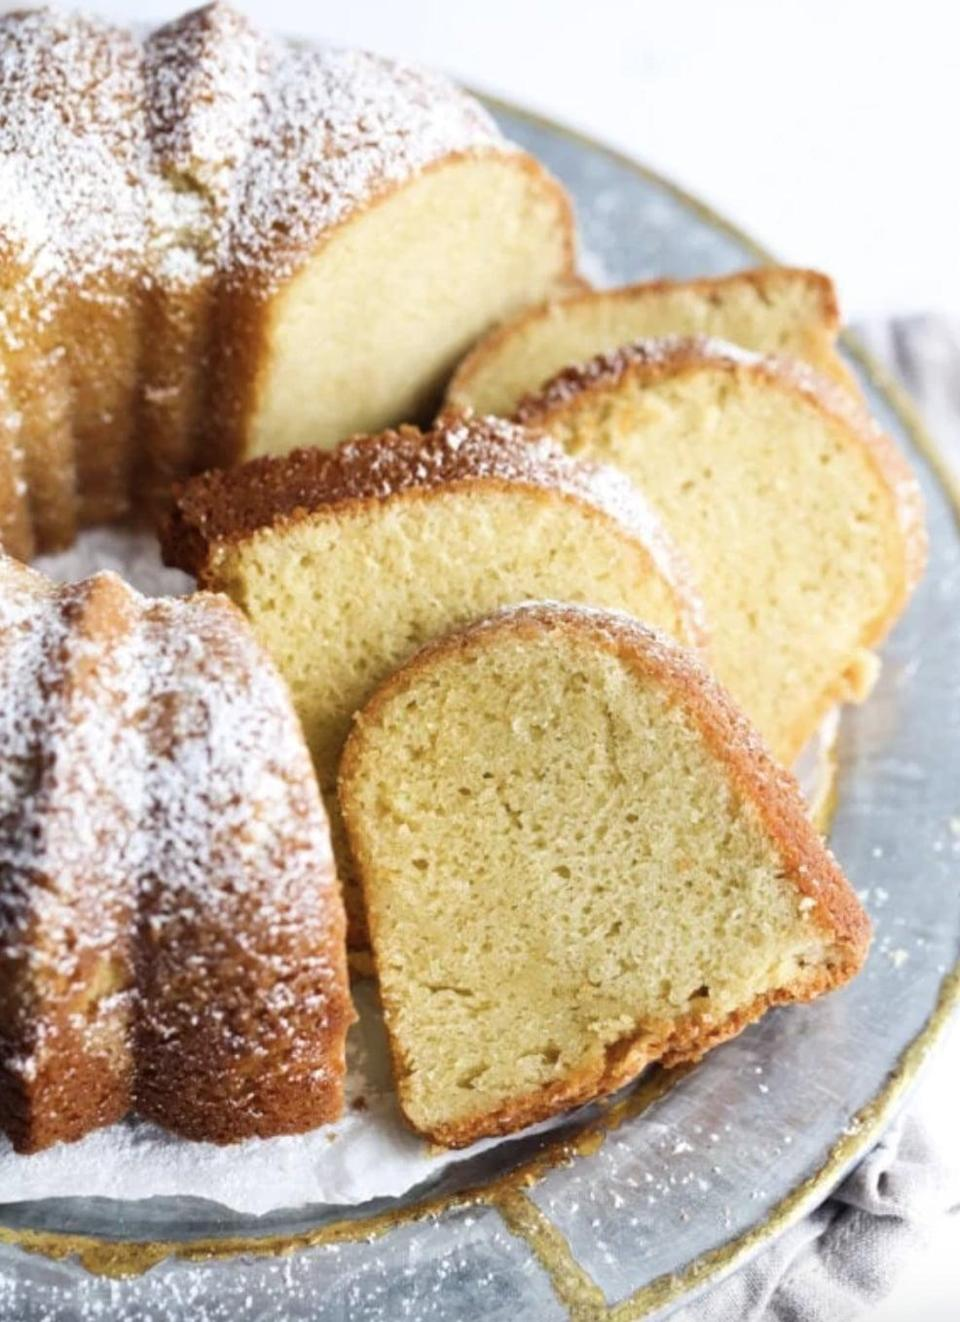 "<p>North Carolina saw a spike in pound cake recipe searches, and for good reason! With a variety of different ways to make it, one recipe just isn't enough.</p> <p><strong>Get the recipe</strong>: <a href=""https://cookiesandcups.com/sour-cream-pound-cake/"" class=""link rapid-noclick-resp"" rel=""nofollow noopener"" target=""_blank"" data-ylk=""slk:sour cream pound cake"">sour cream pound cake</a></p>"